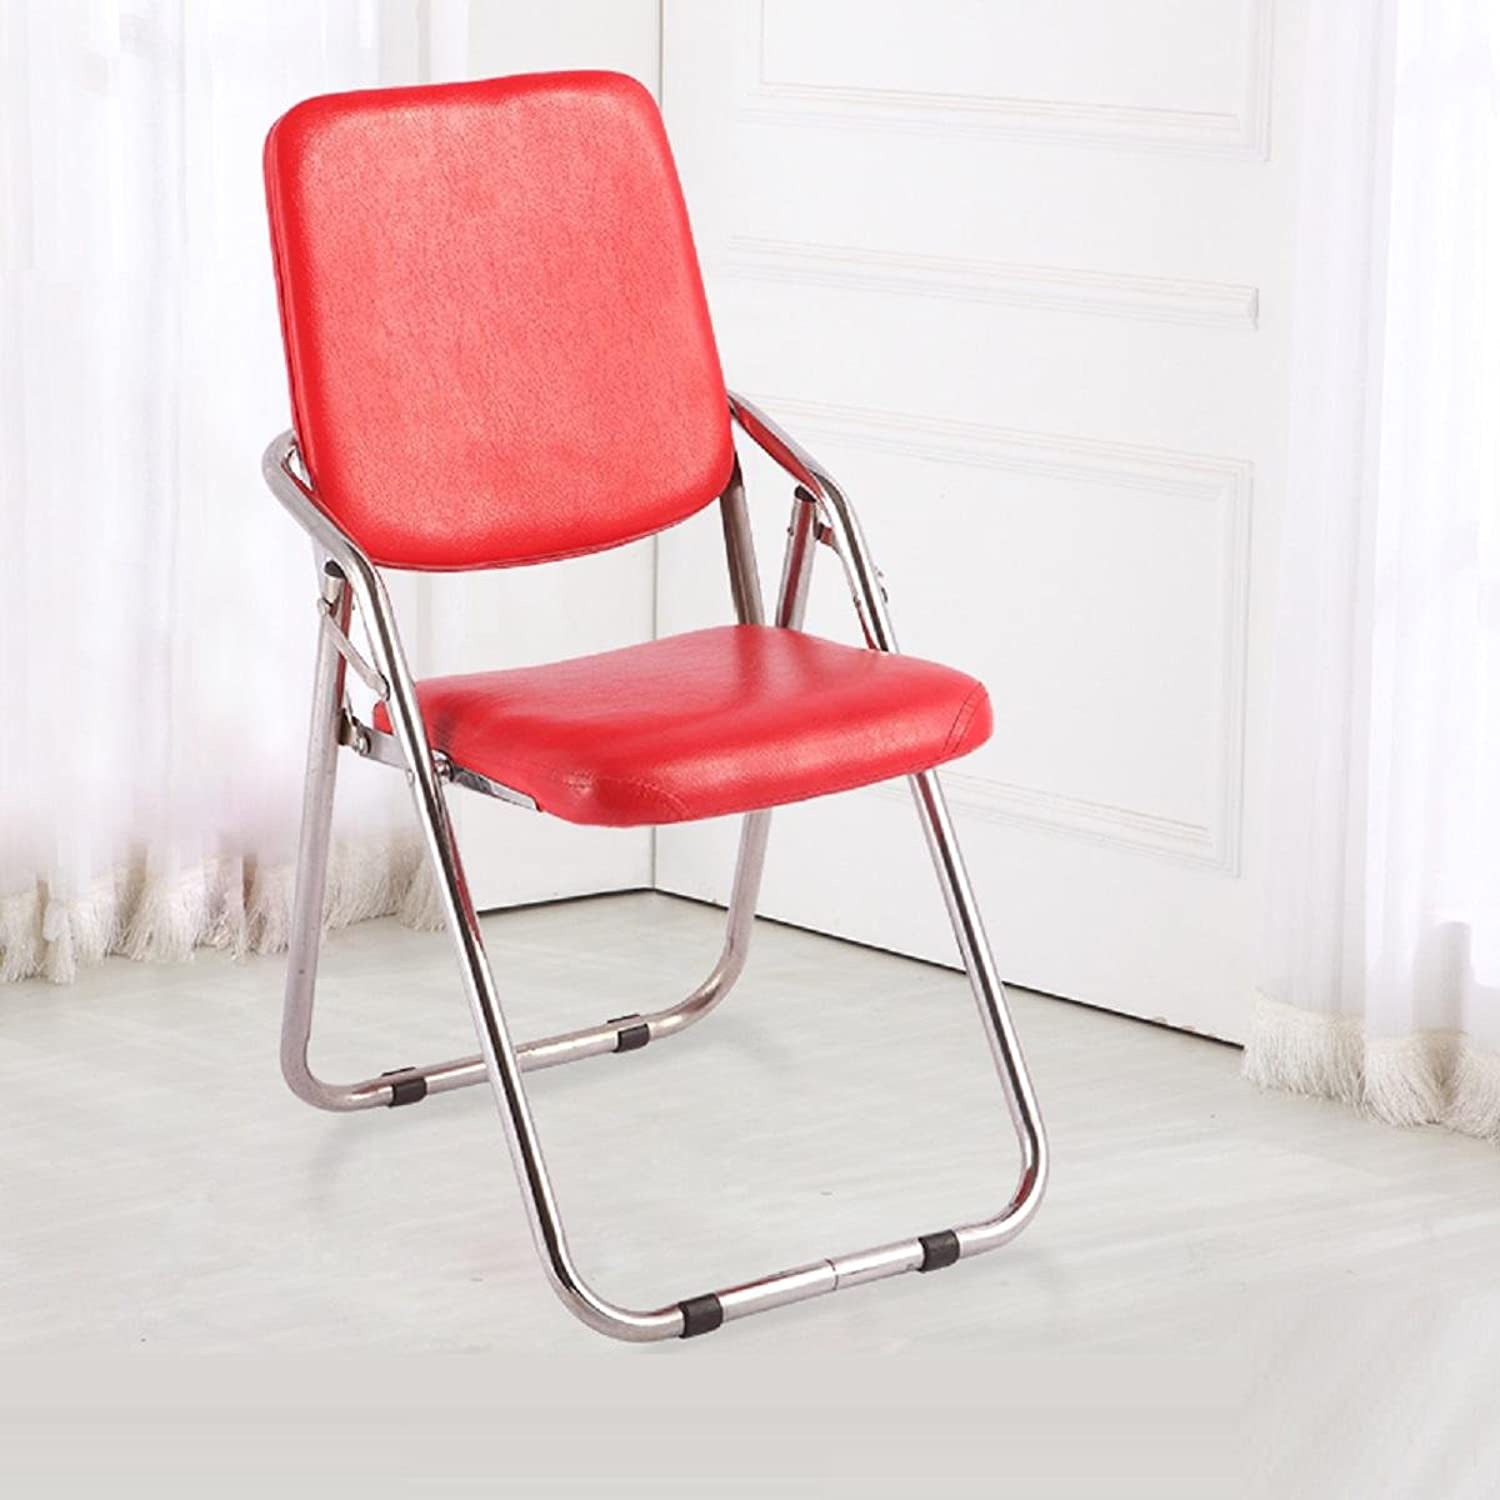 GAOJIAN Office Folding Chair Stool Leisure Backrest Computer Chair Home Table Chair Stool Staff Training Chair Weighing  200kg , c